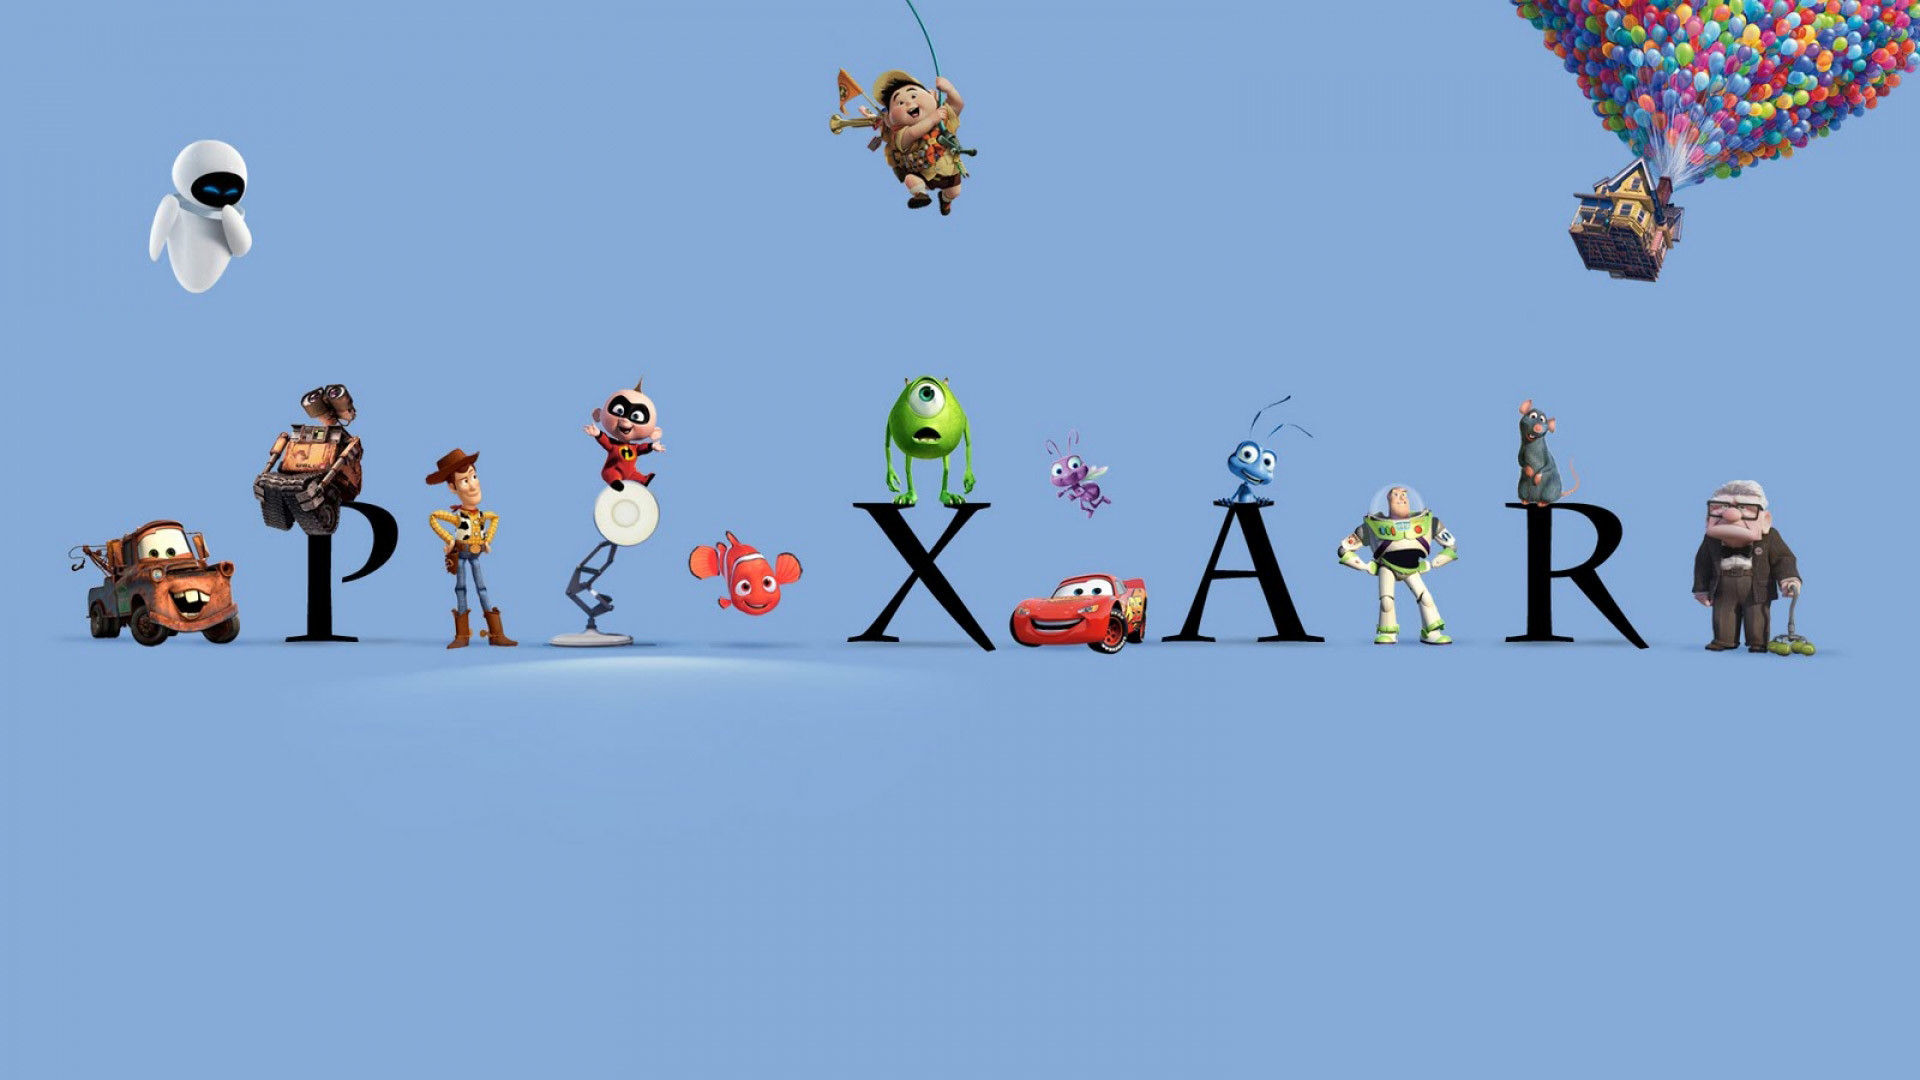 Disney Pixar Wallpaper Hd 68 Images